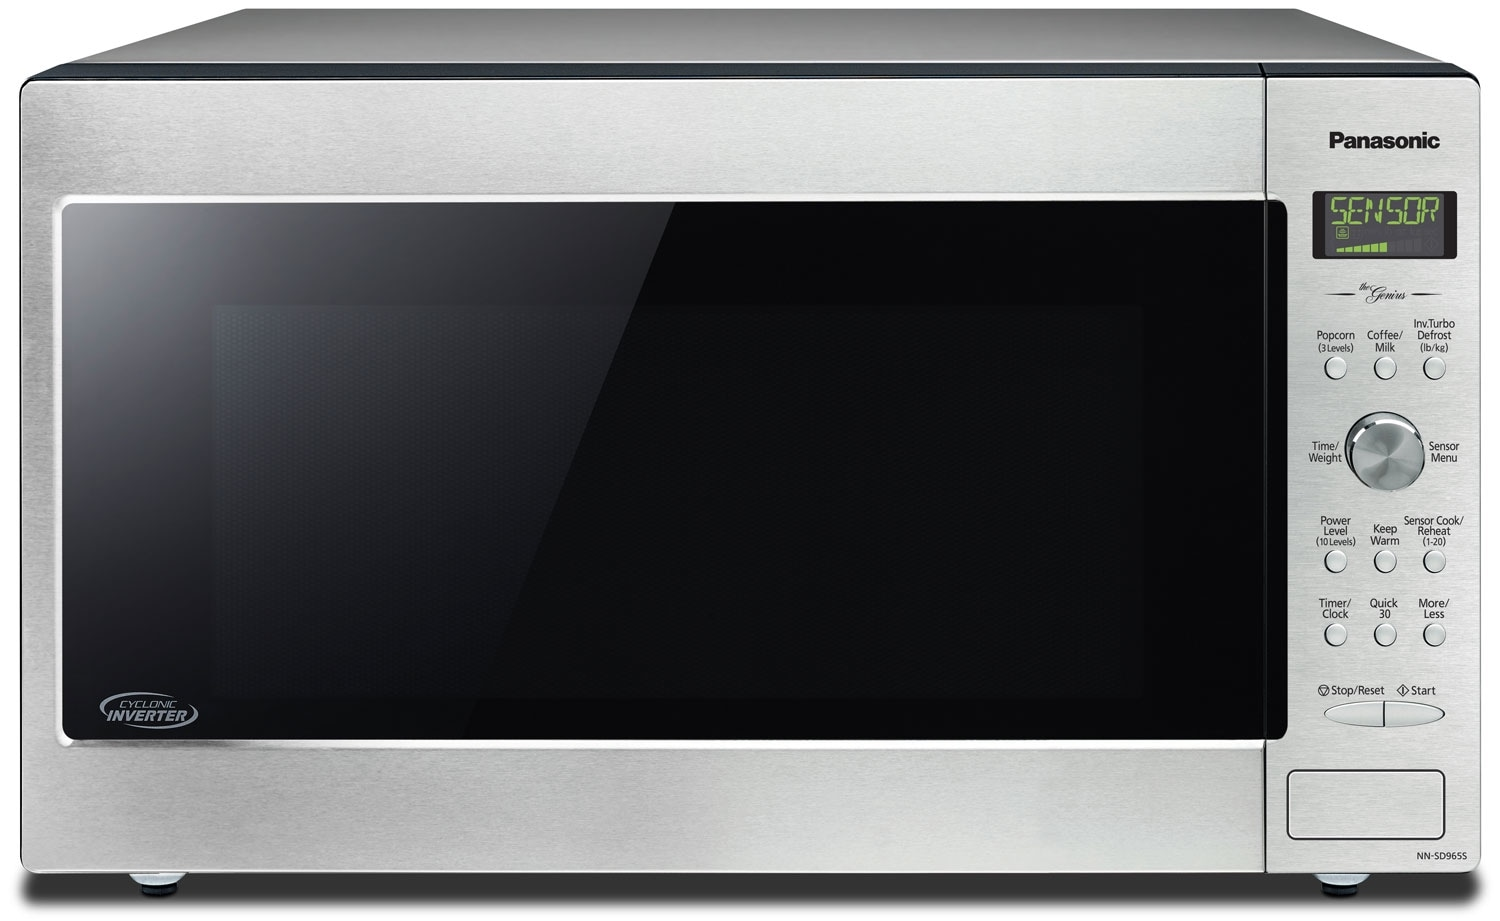 Panasonic® 2.2 Cu. Ft. Digital Countertop Microwave - Stainless Steel